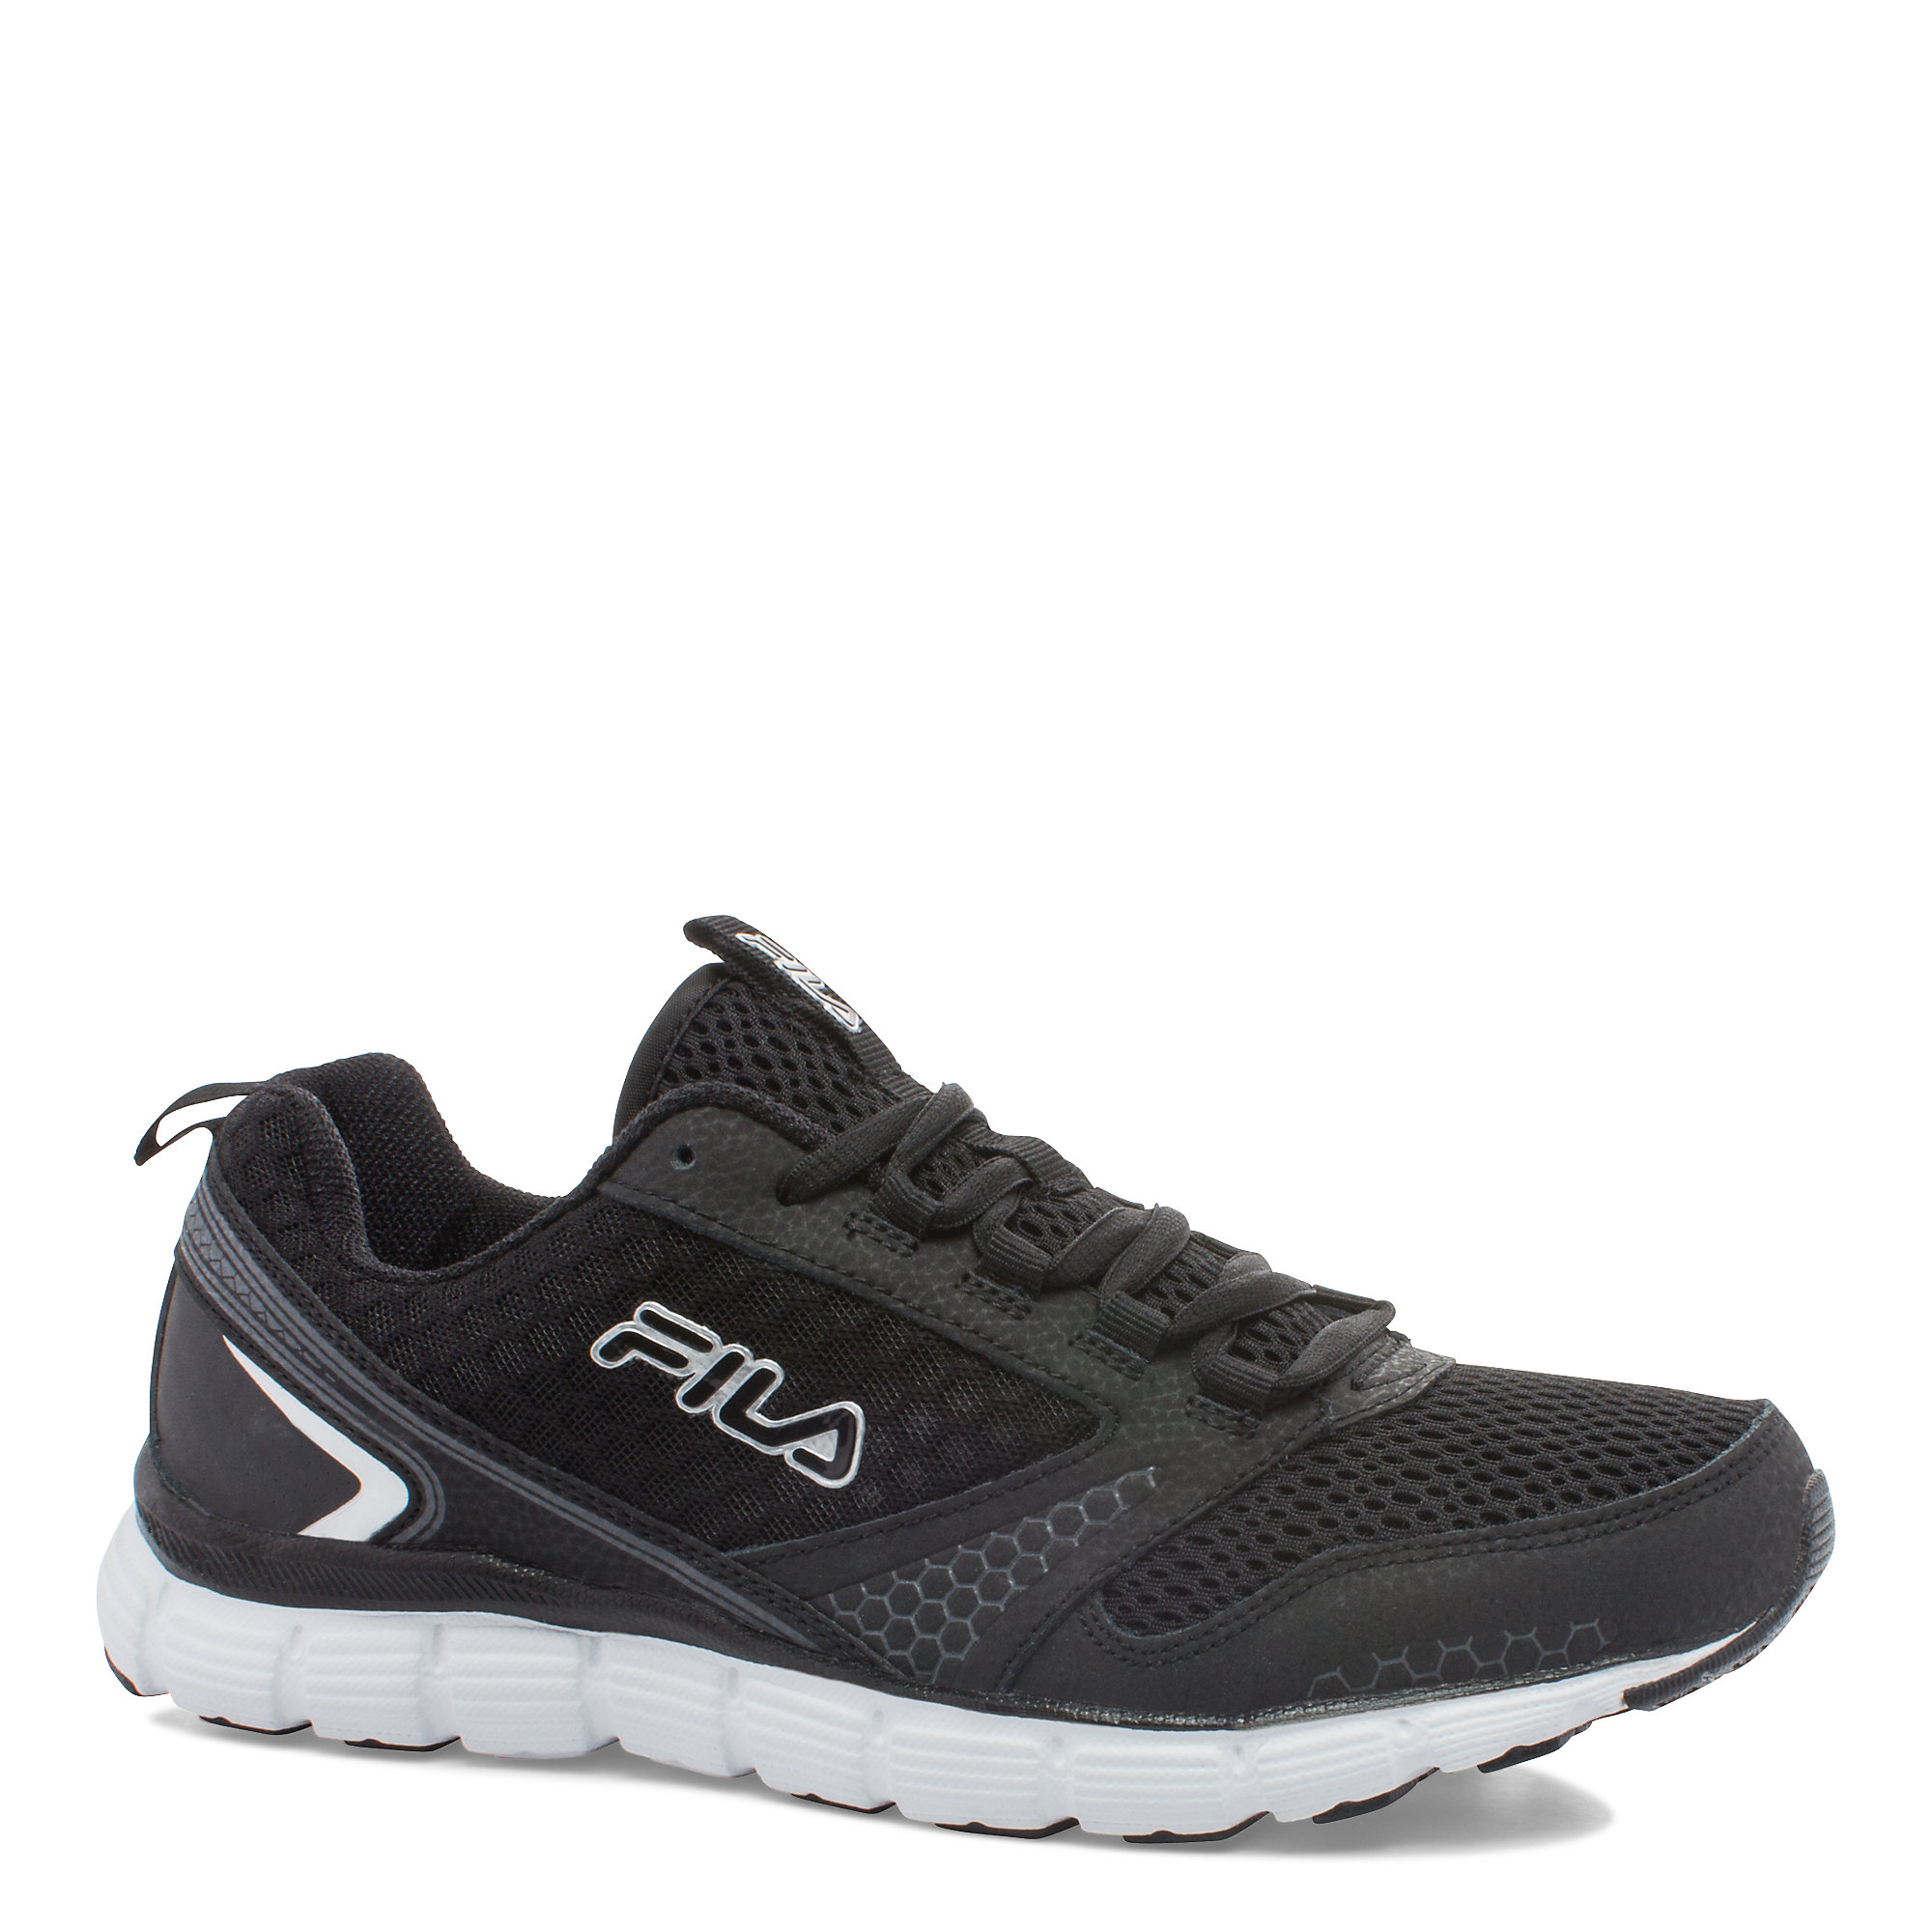 Fila Men's Memory Windstar Running Shoes